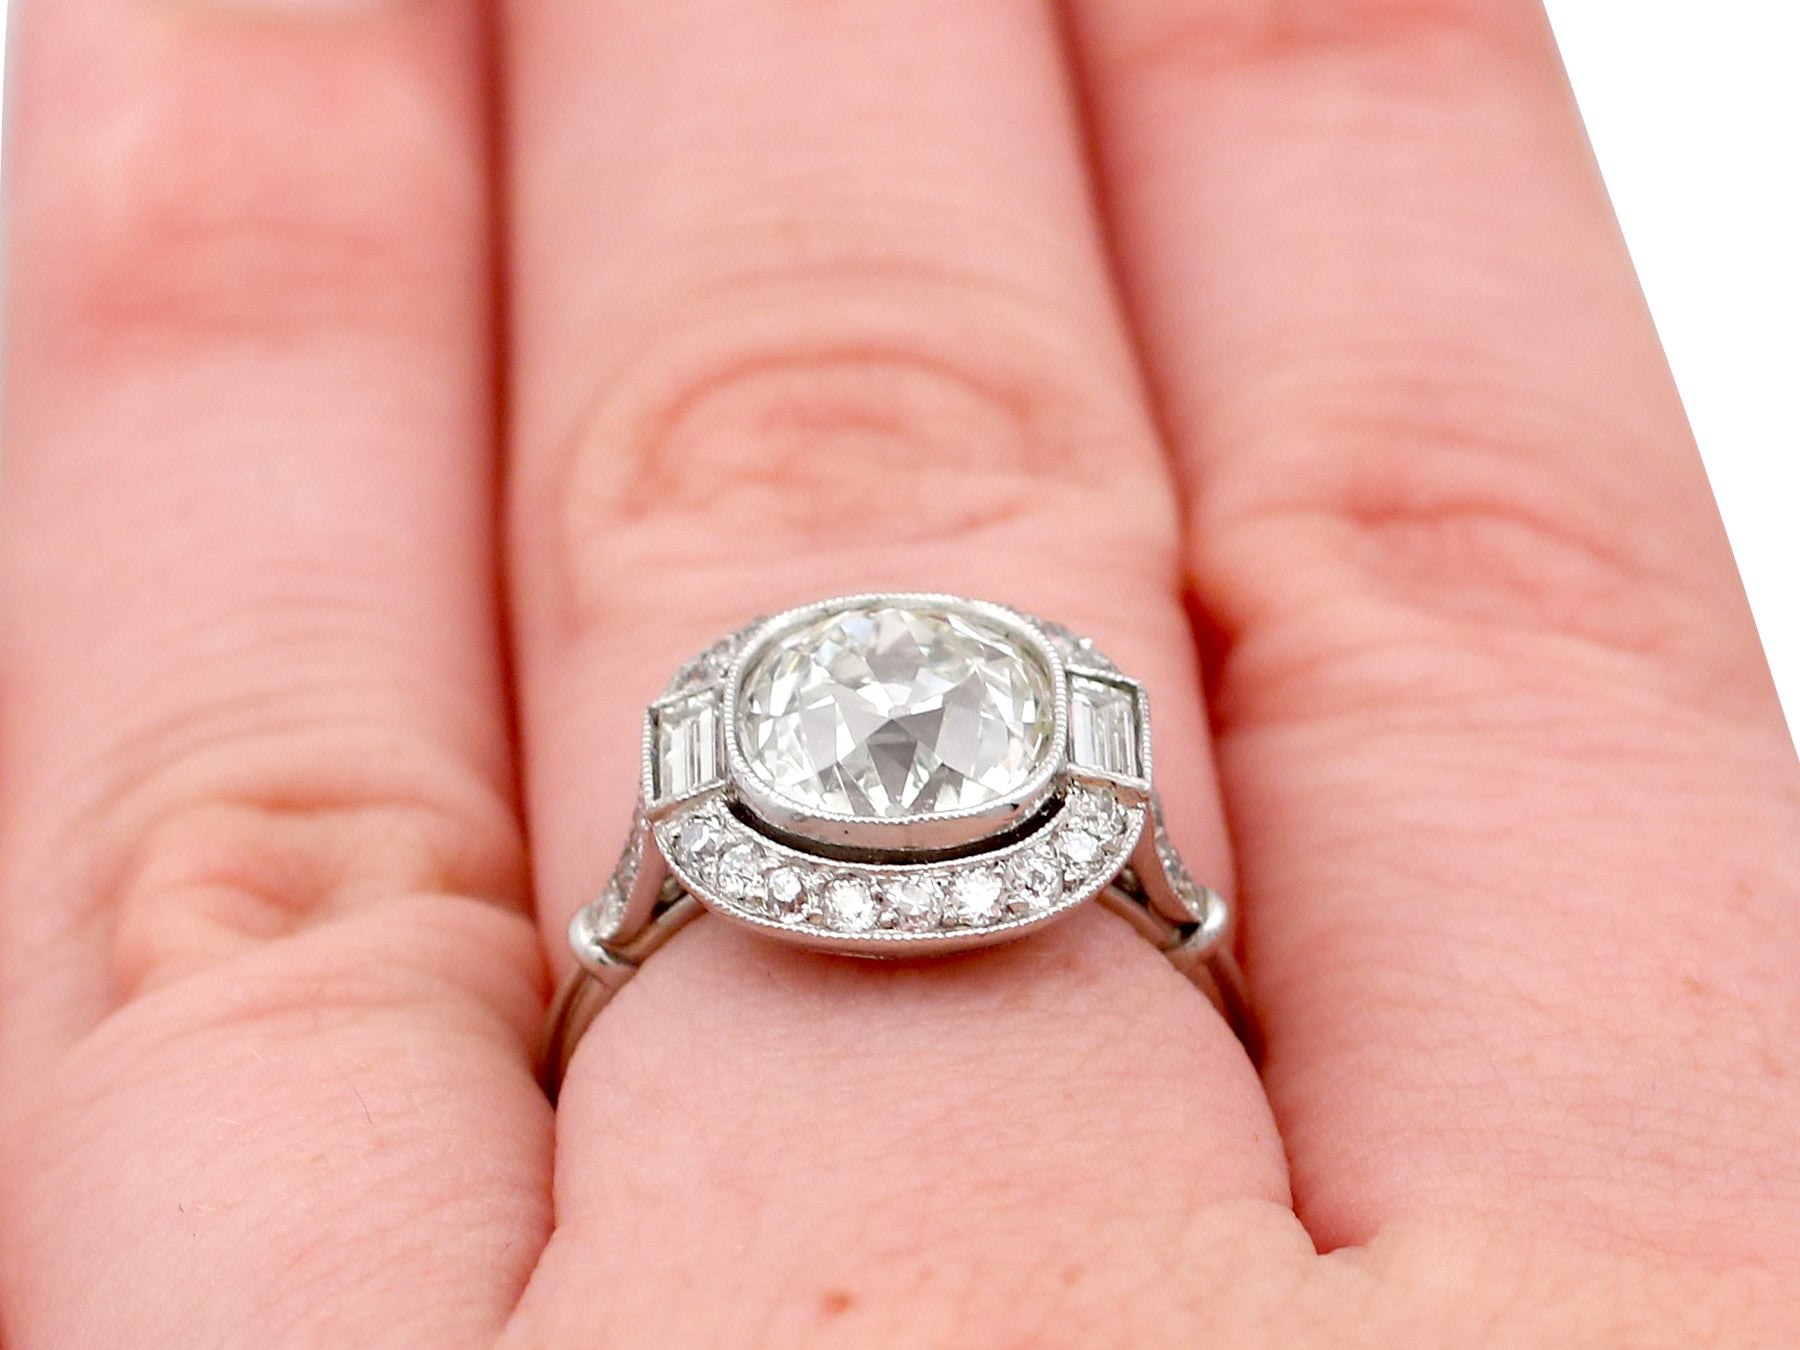 4.23 Carat Diamond and Platinum Halo Engagement Ring For Sale at 1stdibs